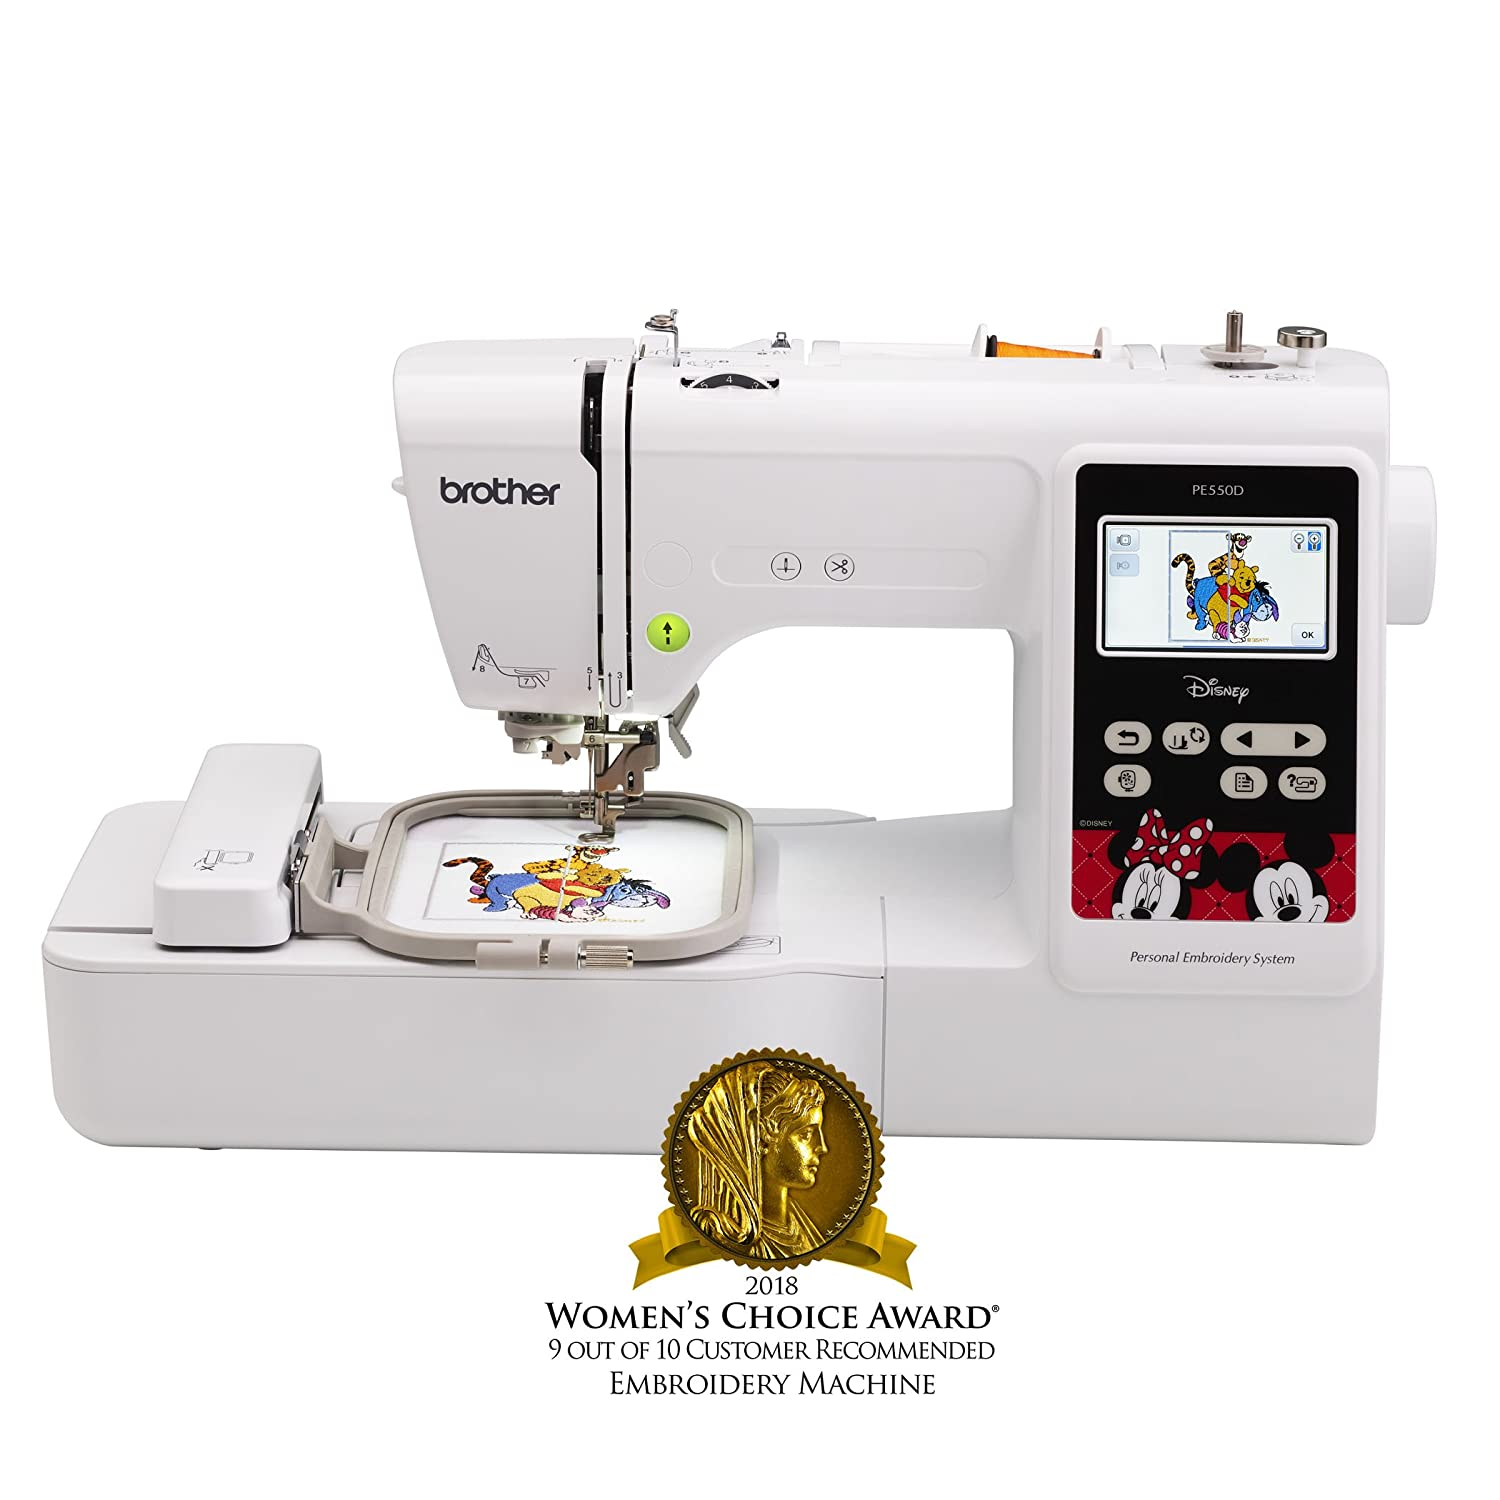 Brother Embroidery Machine, PE550D, 125 Built-In Designs, 45 Disney  Designs, Large Color Touch LCD Display, Automatic Needle Threader, 25-Year  Limited